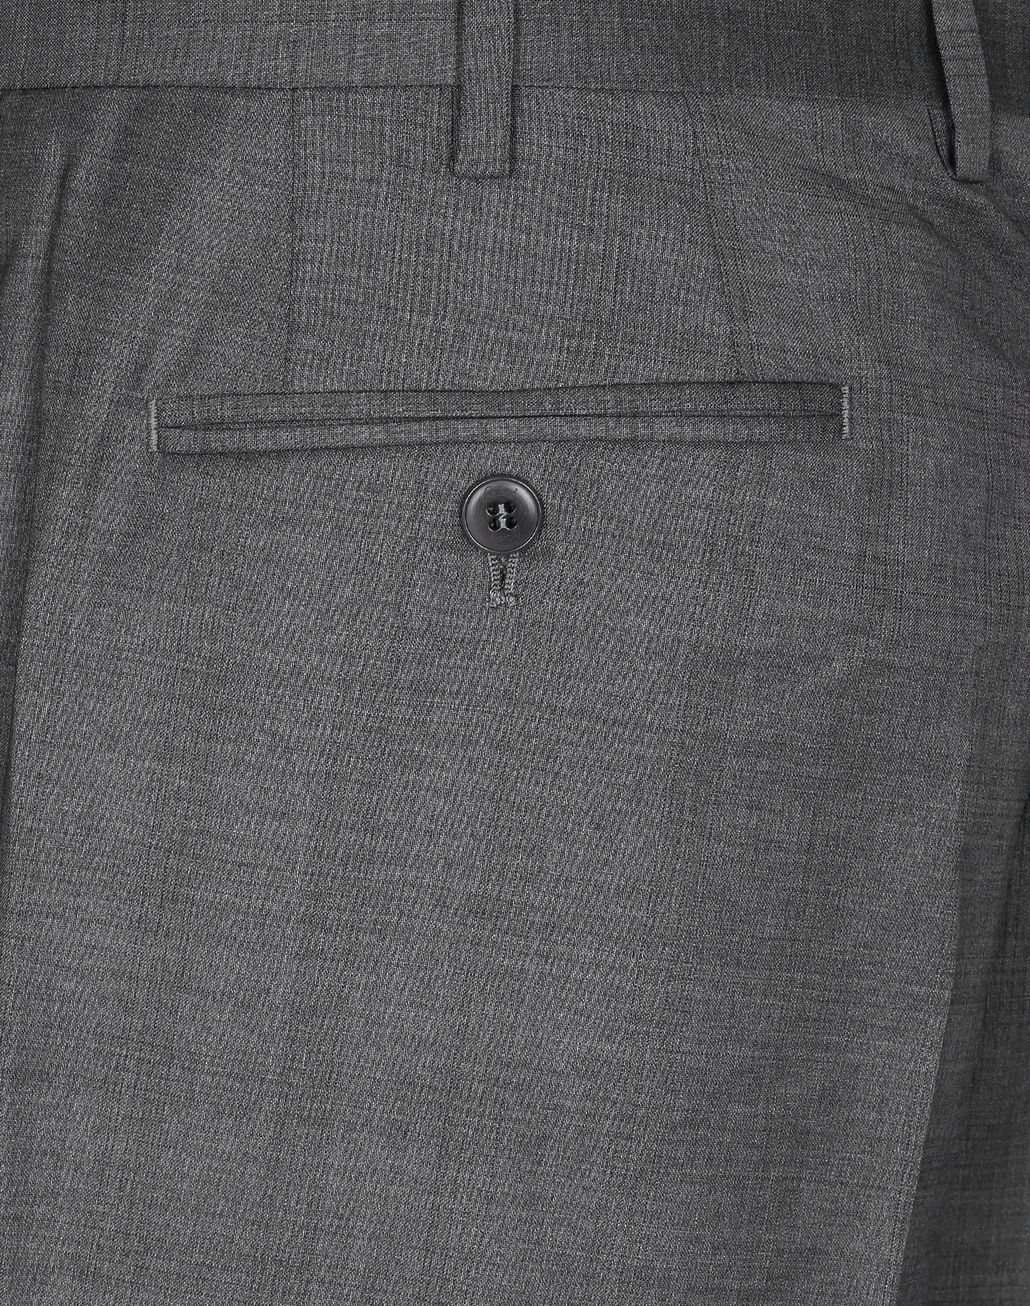 BRIONI Graphite Tigullio Check Trousers Trousers [*** pickupInStoreShippingNotGuaranteed_info ***] e